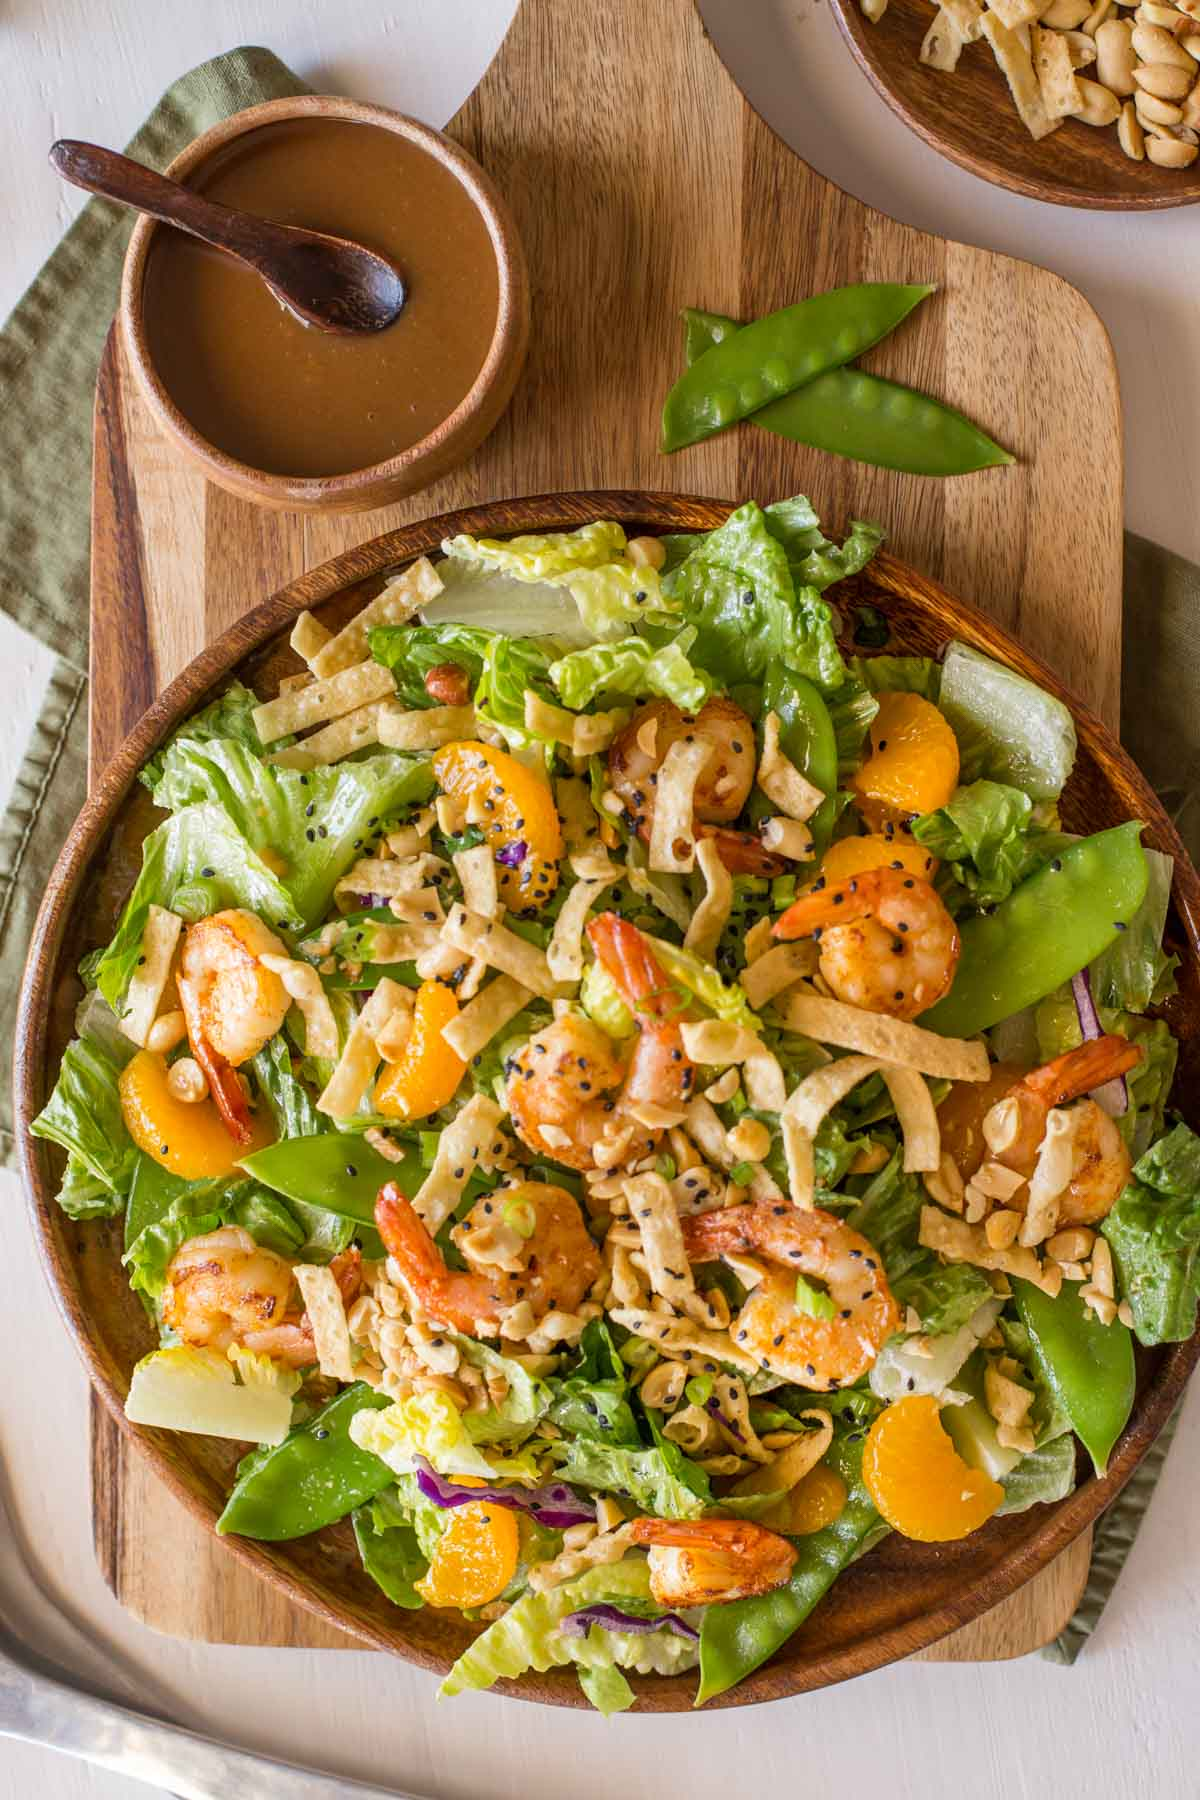 Shrimp Salad on a large serving plate, sitting next to a small wood bowl of the Spicy Peanut Dressing and a bowl of crispy wonton strips and peanuts.